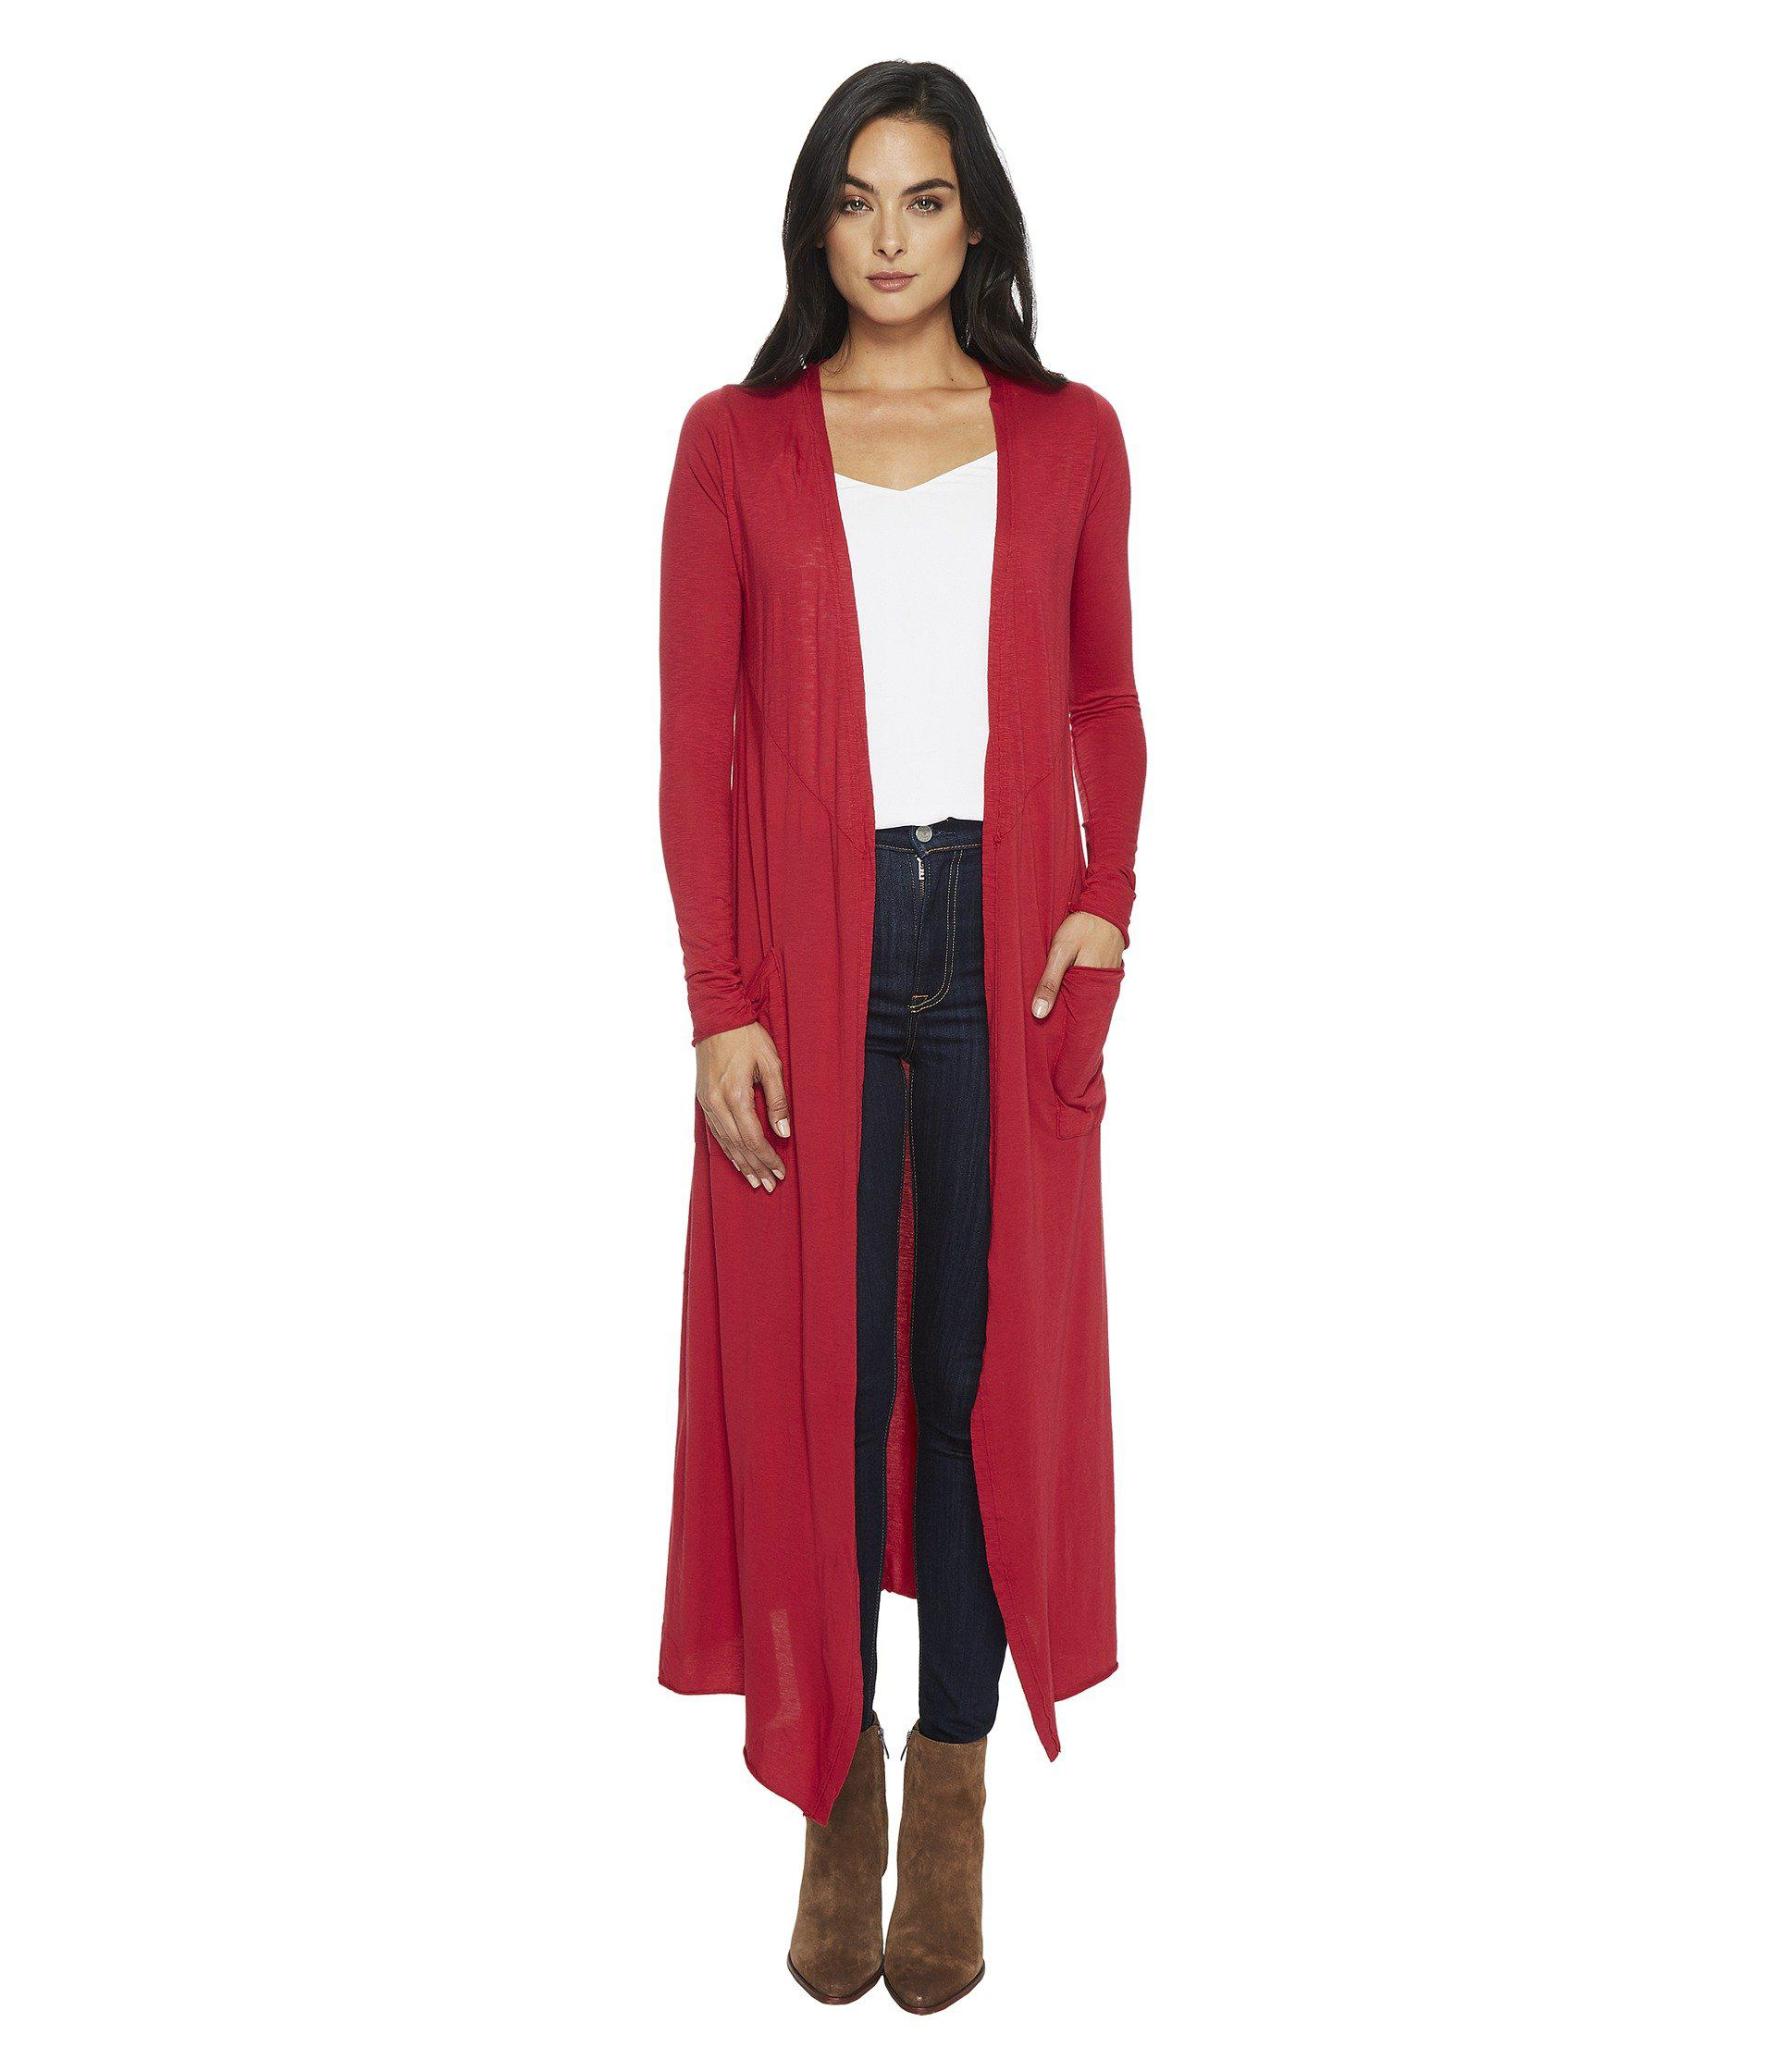 Lamade Reed Duster Cardigan in Red | Lyst